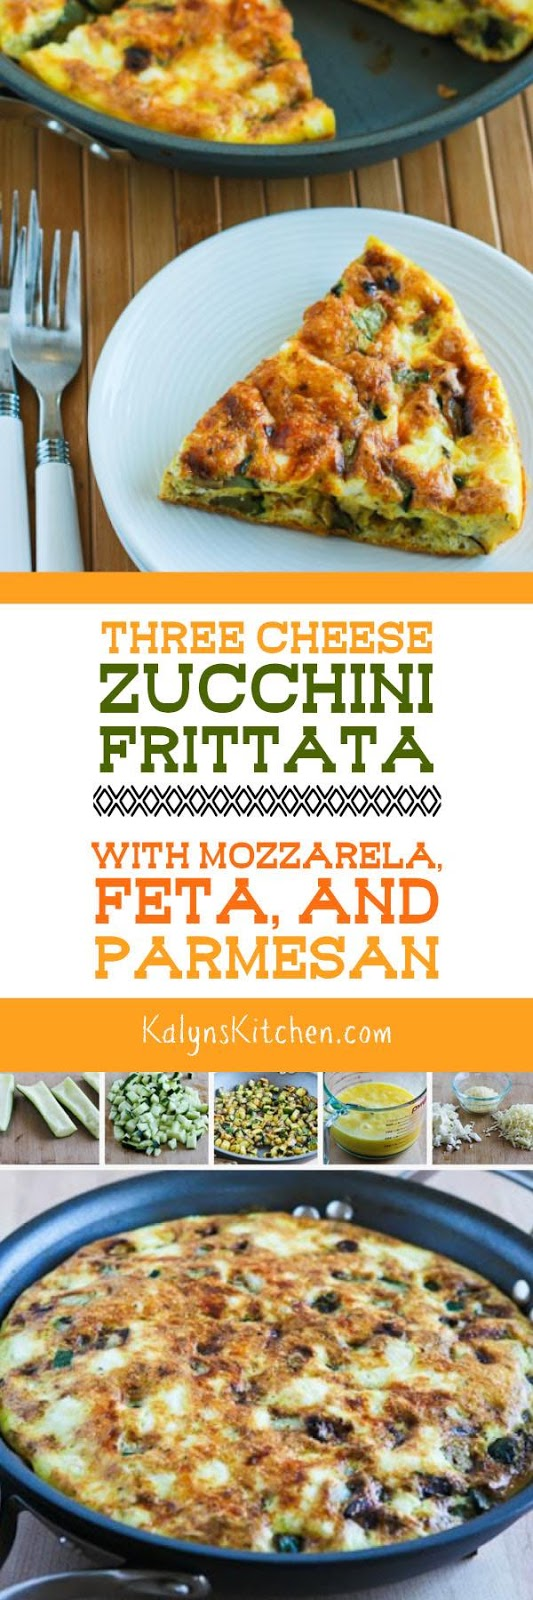 Three Cheese Zucchini Frittata with Mozzarella, Feta, and Parmesan ...